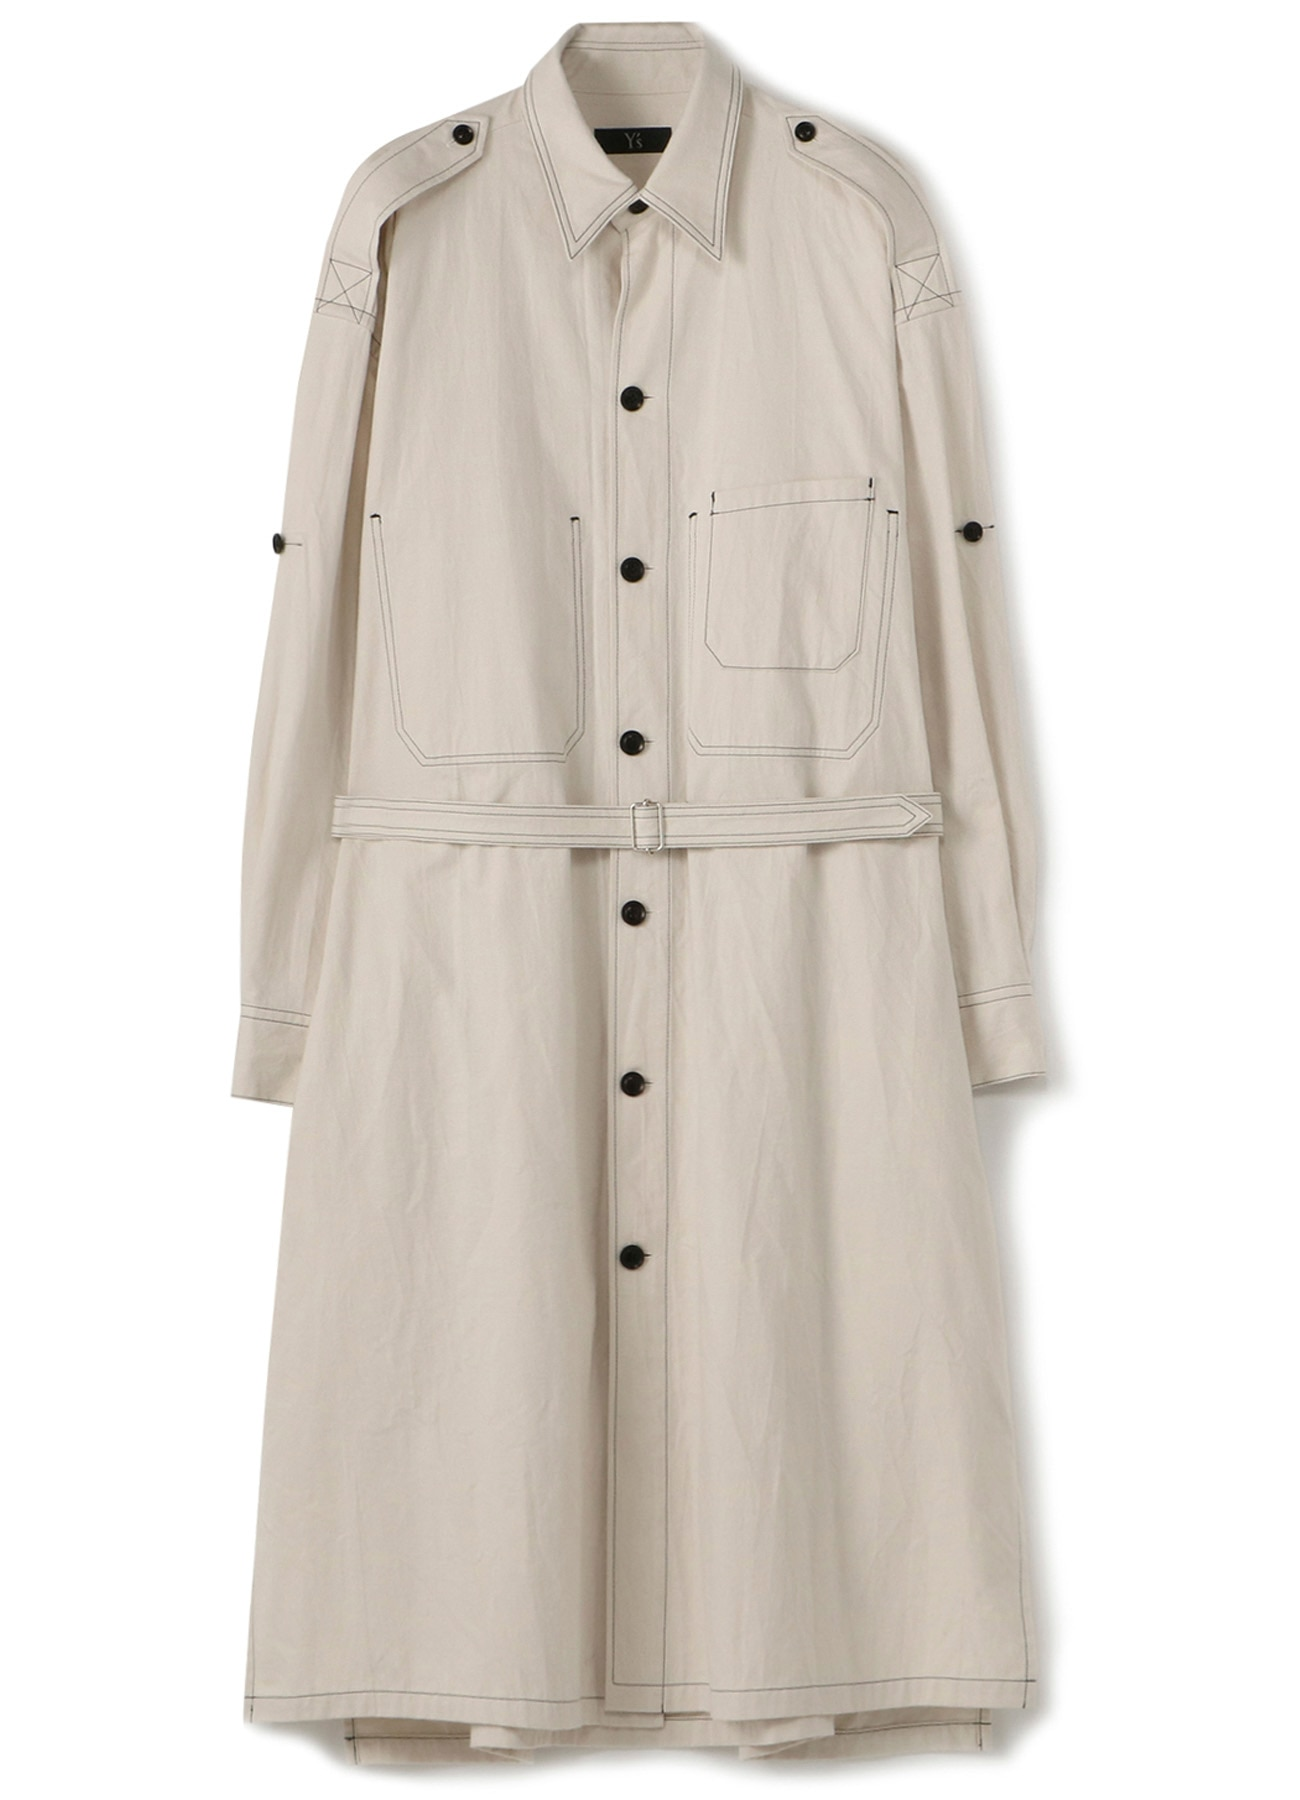 COTTON TWILL 2 CHEST POCKET SHIRT DRESS